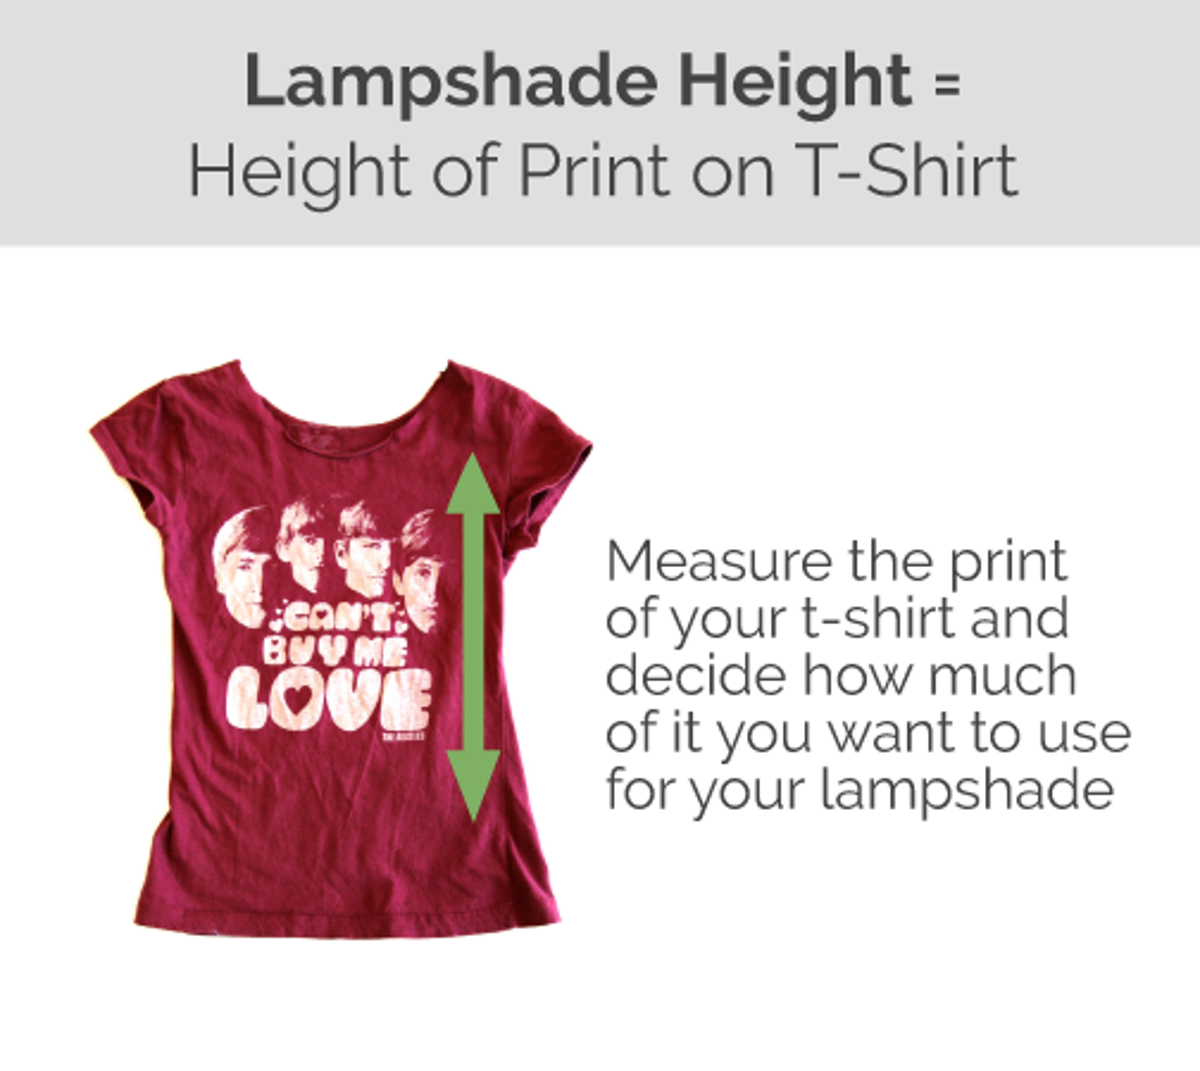 Turn Your Old T-Shirt into a Lampshade with Our DIY Lampshade Kit - Check out more great DIY lamp tutorials at http://www.ilikethatlamp.com !